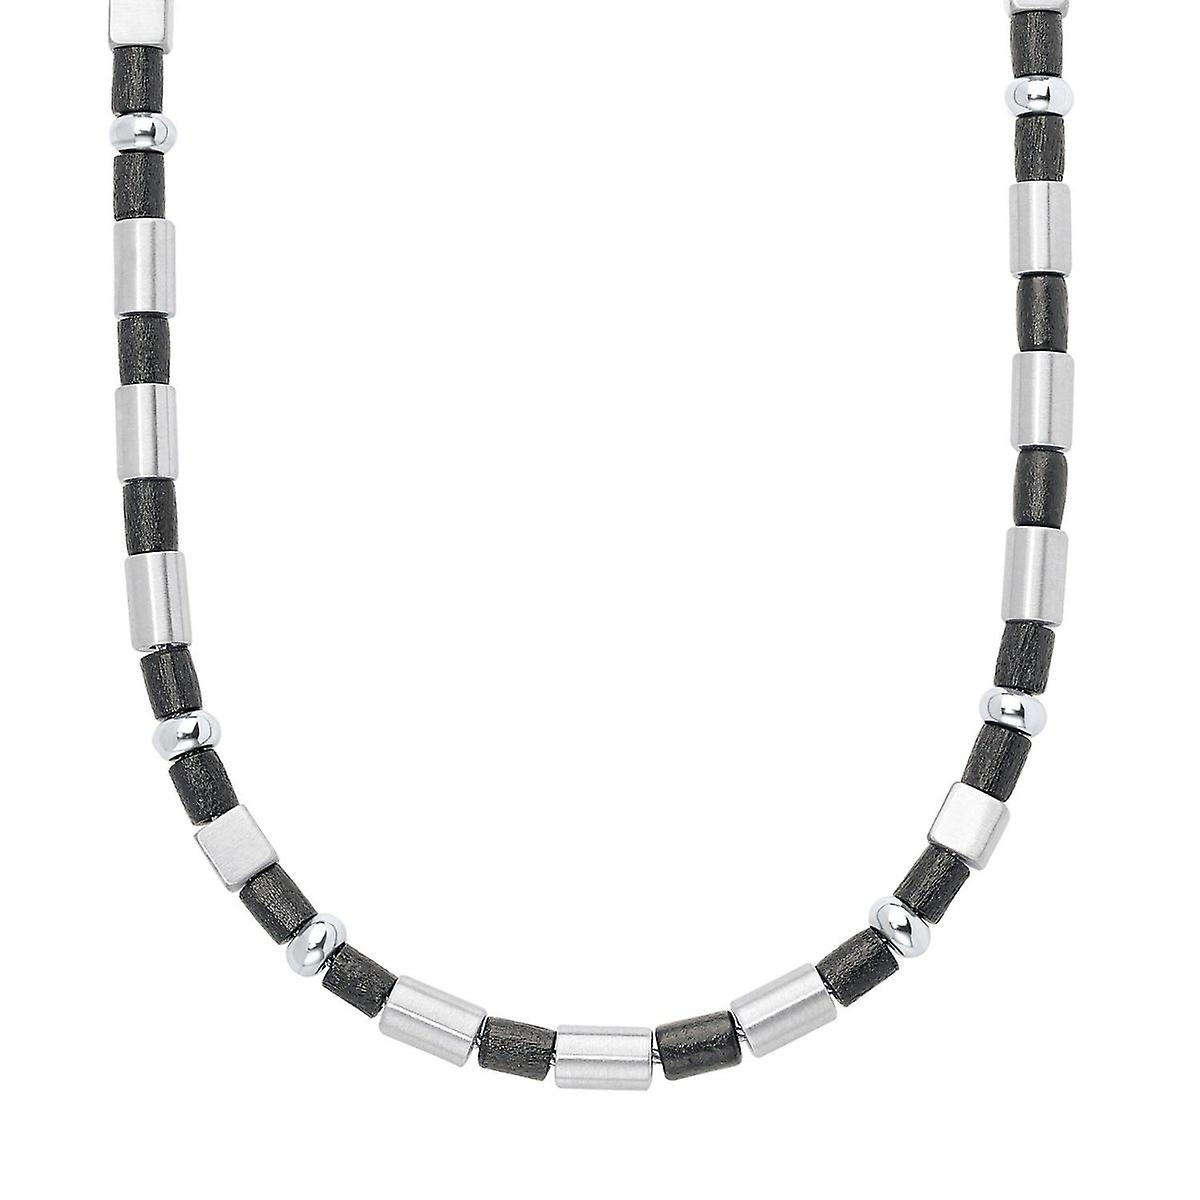 s.Oliver jewel mens necklace chain stainless steel wood SO268/1 - 9066360